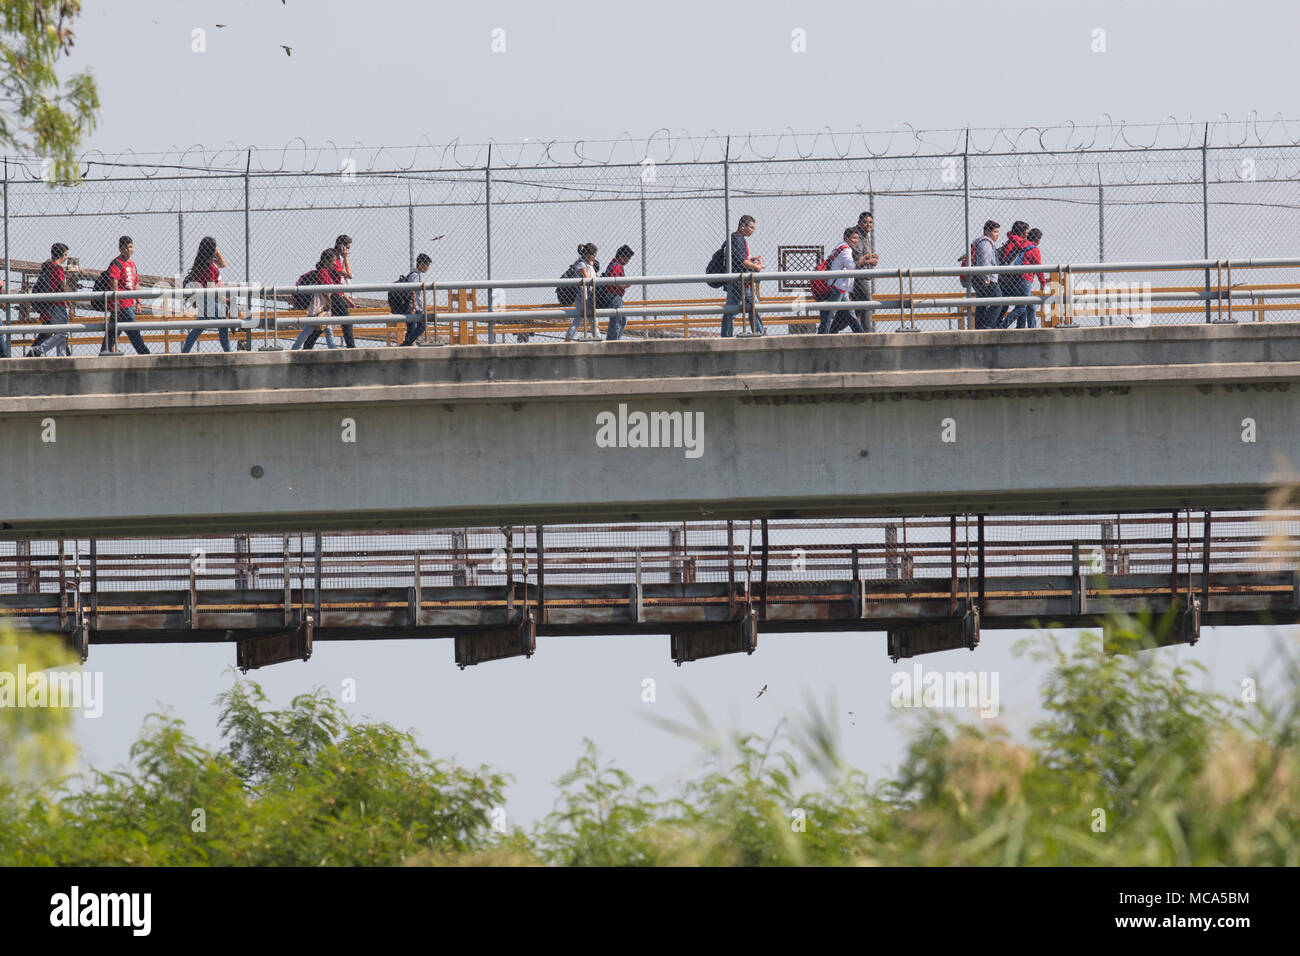 Students cross the international bridge headed to Mexico between Roma Texas and Ciudad Miguel Aleman at the end of the school day in the US. - Stock Image